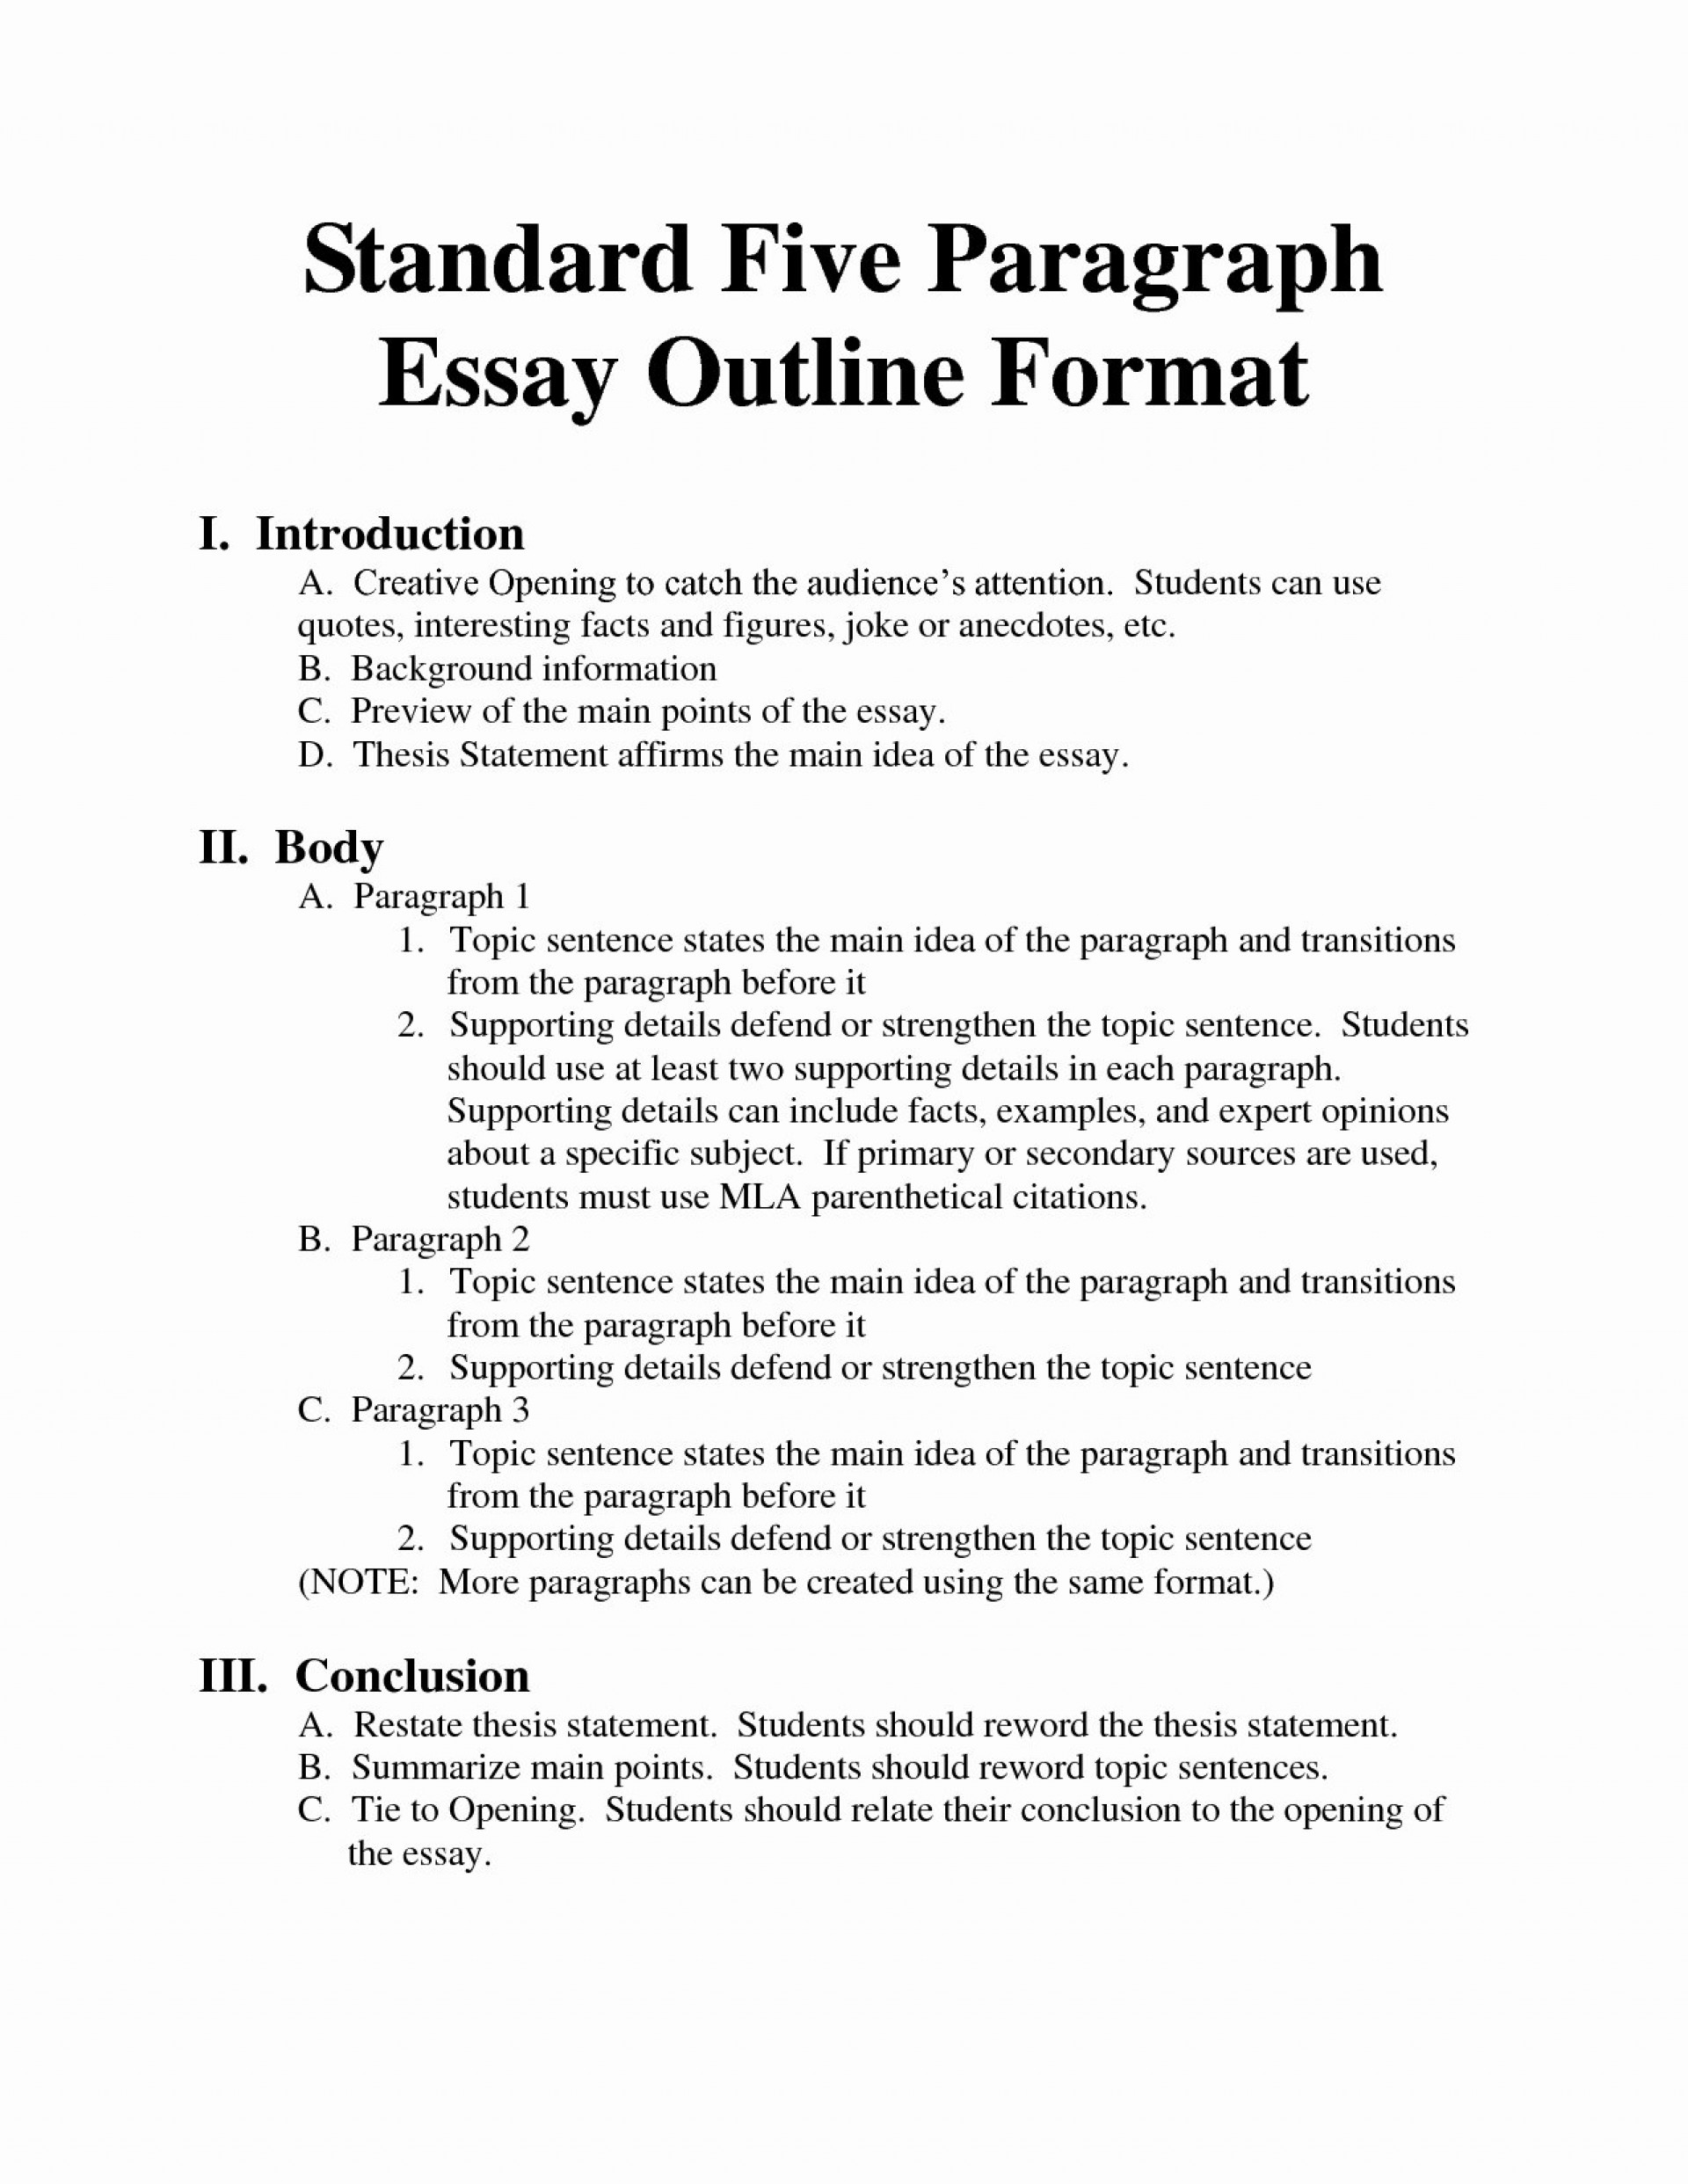 016 Unique Evaluation Essay Outline English Format Movie Of Self Film Template Layout Critical Example Incredible Topics On Horror Movies Definition 1920